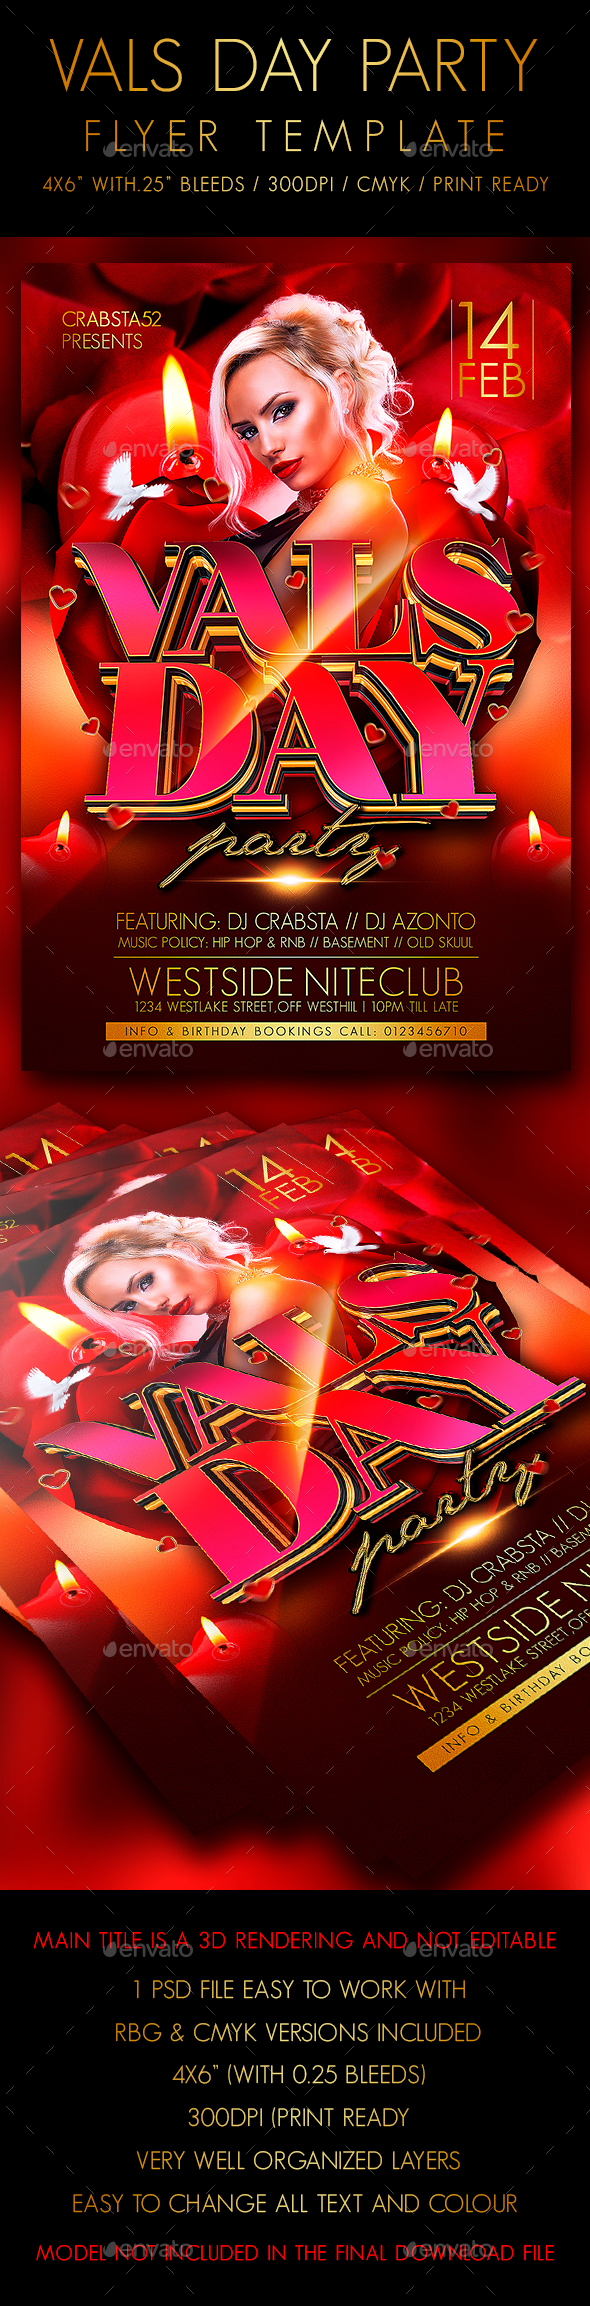 Vals Day Party Flyer Template  - Clubs & Parties Events